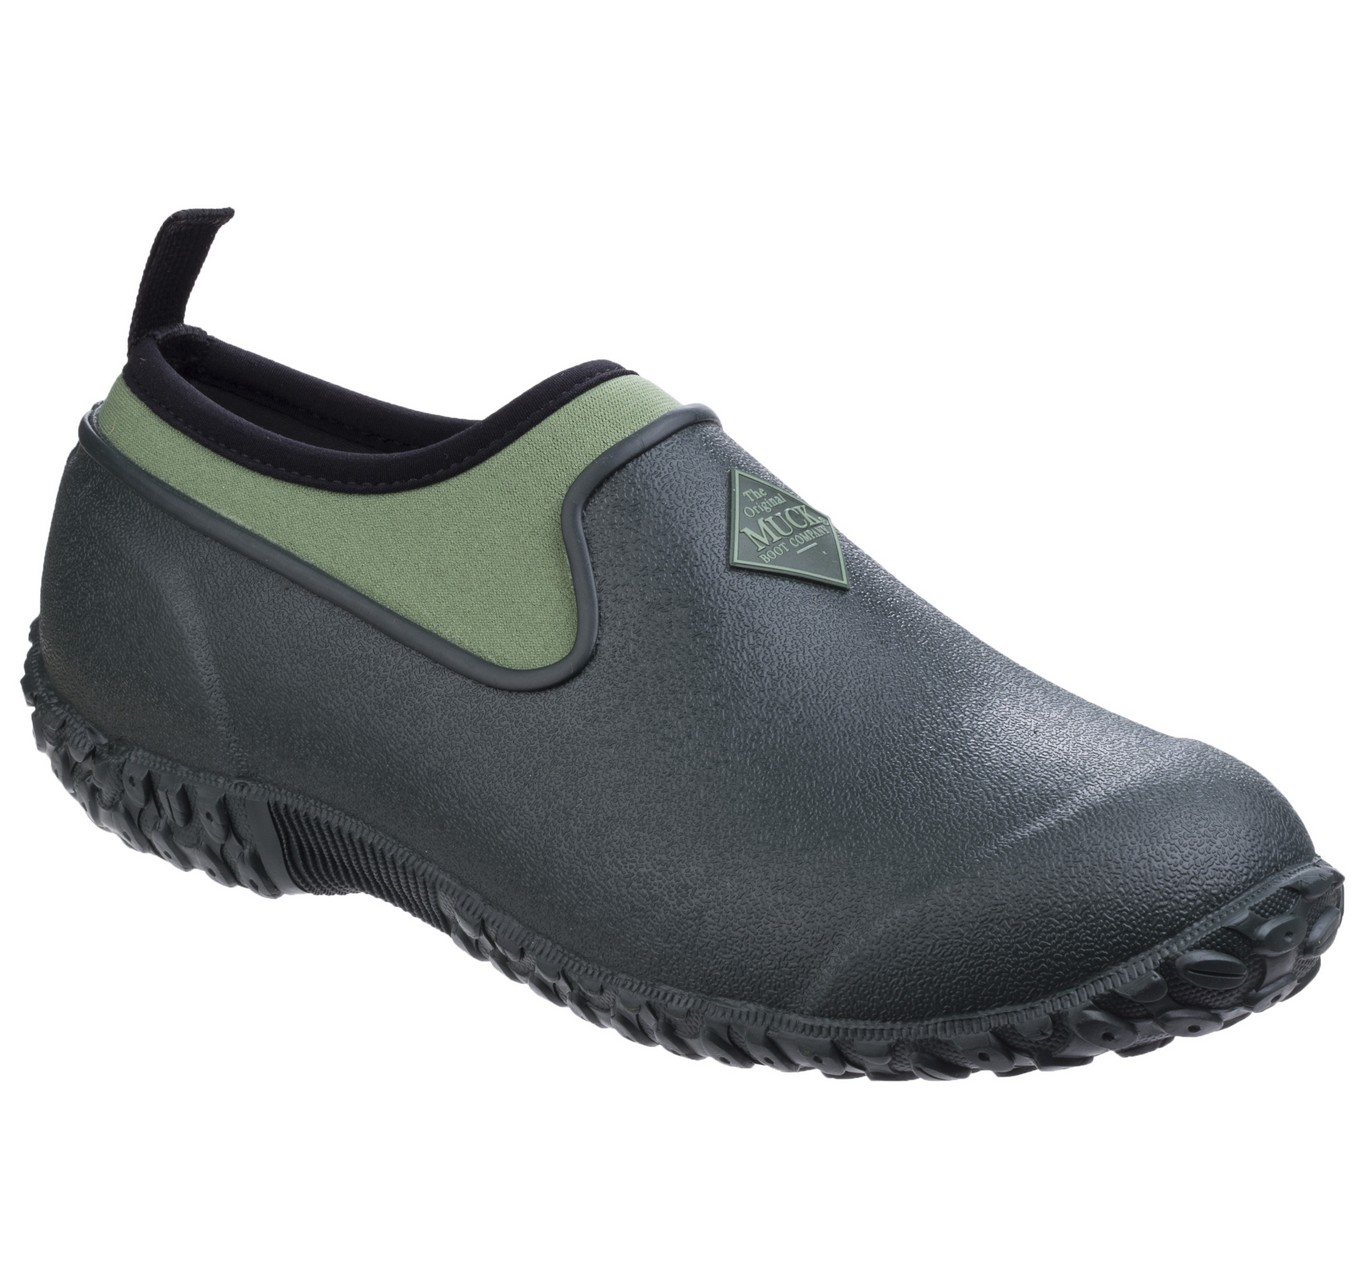 Muckster2 Ladies Low Green 6